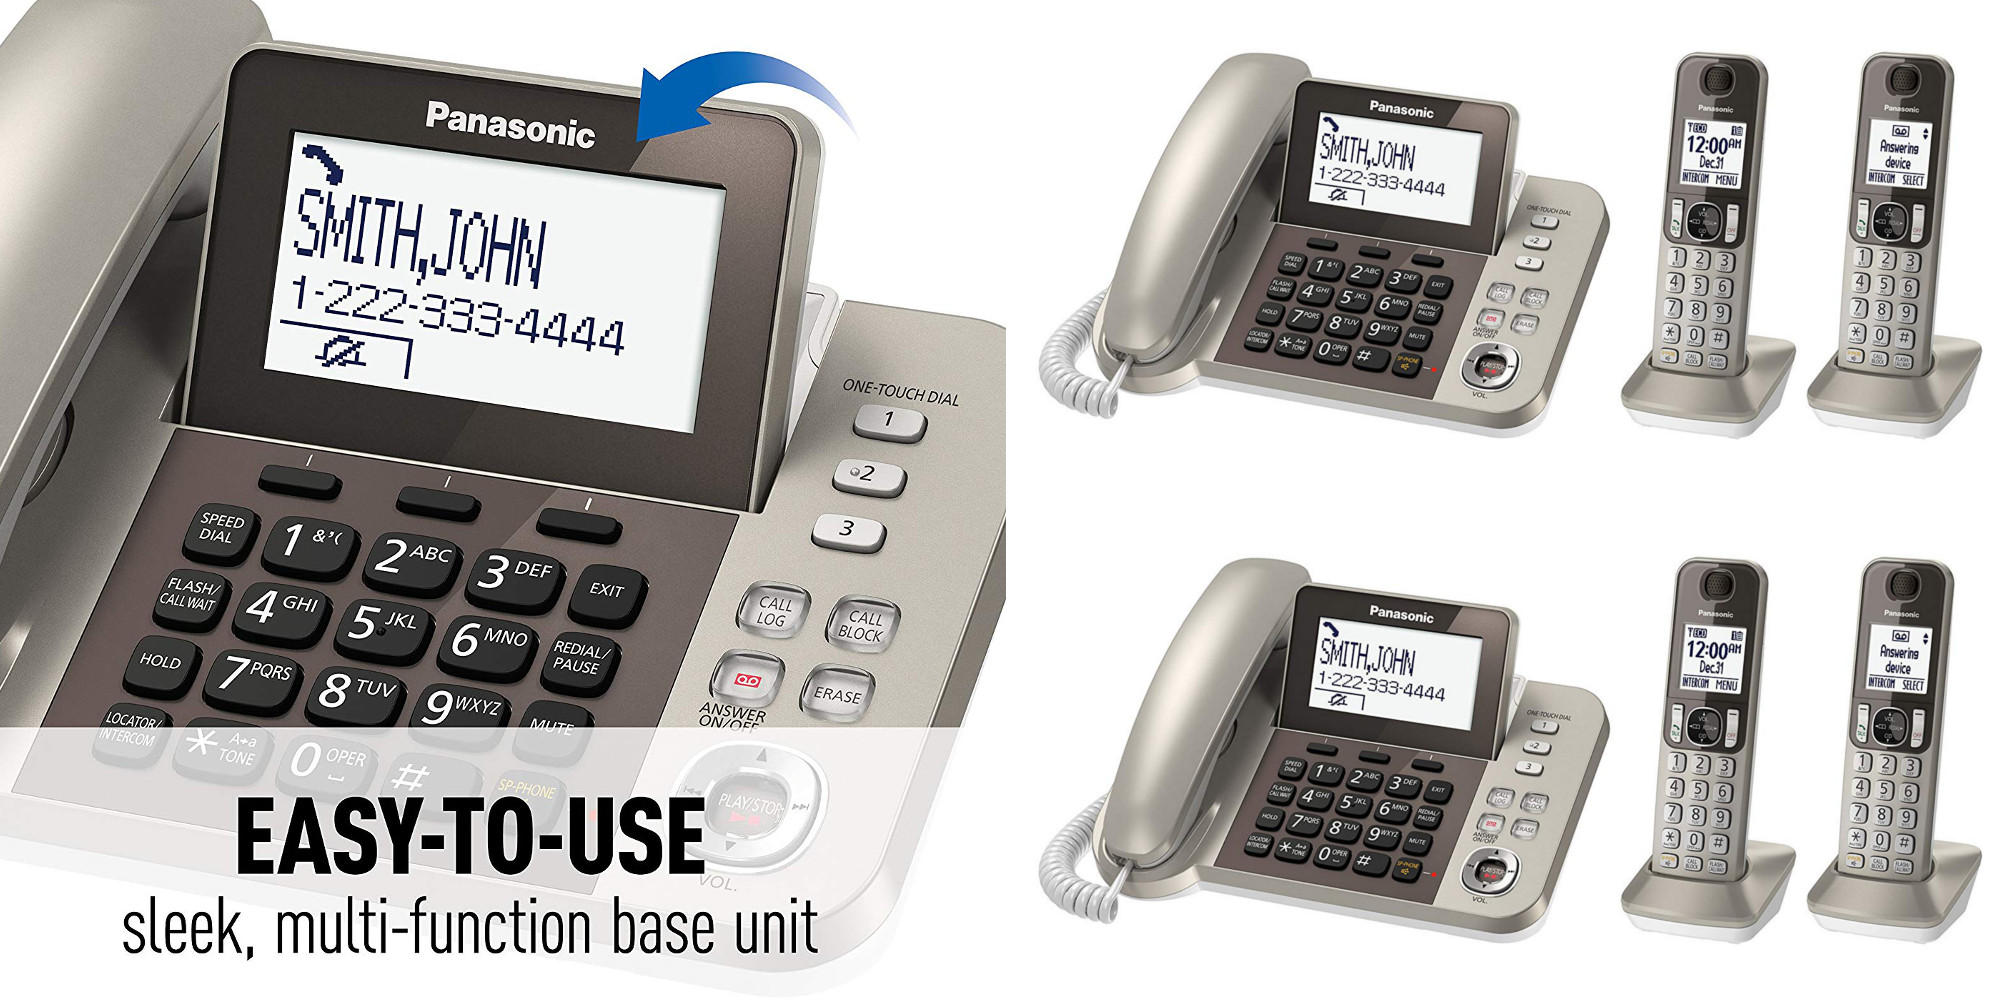 Panasonic's best-selling Cordless Home Phone System + baby monitor now $48 (Reg. up to $80)